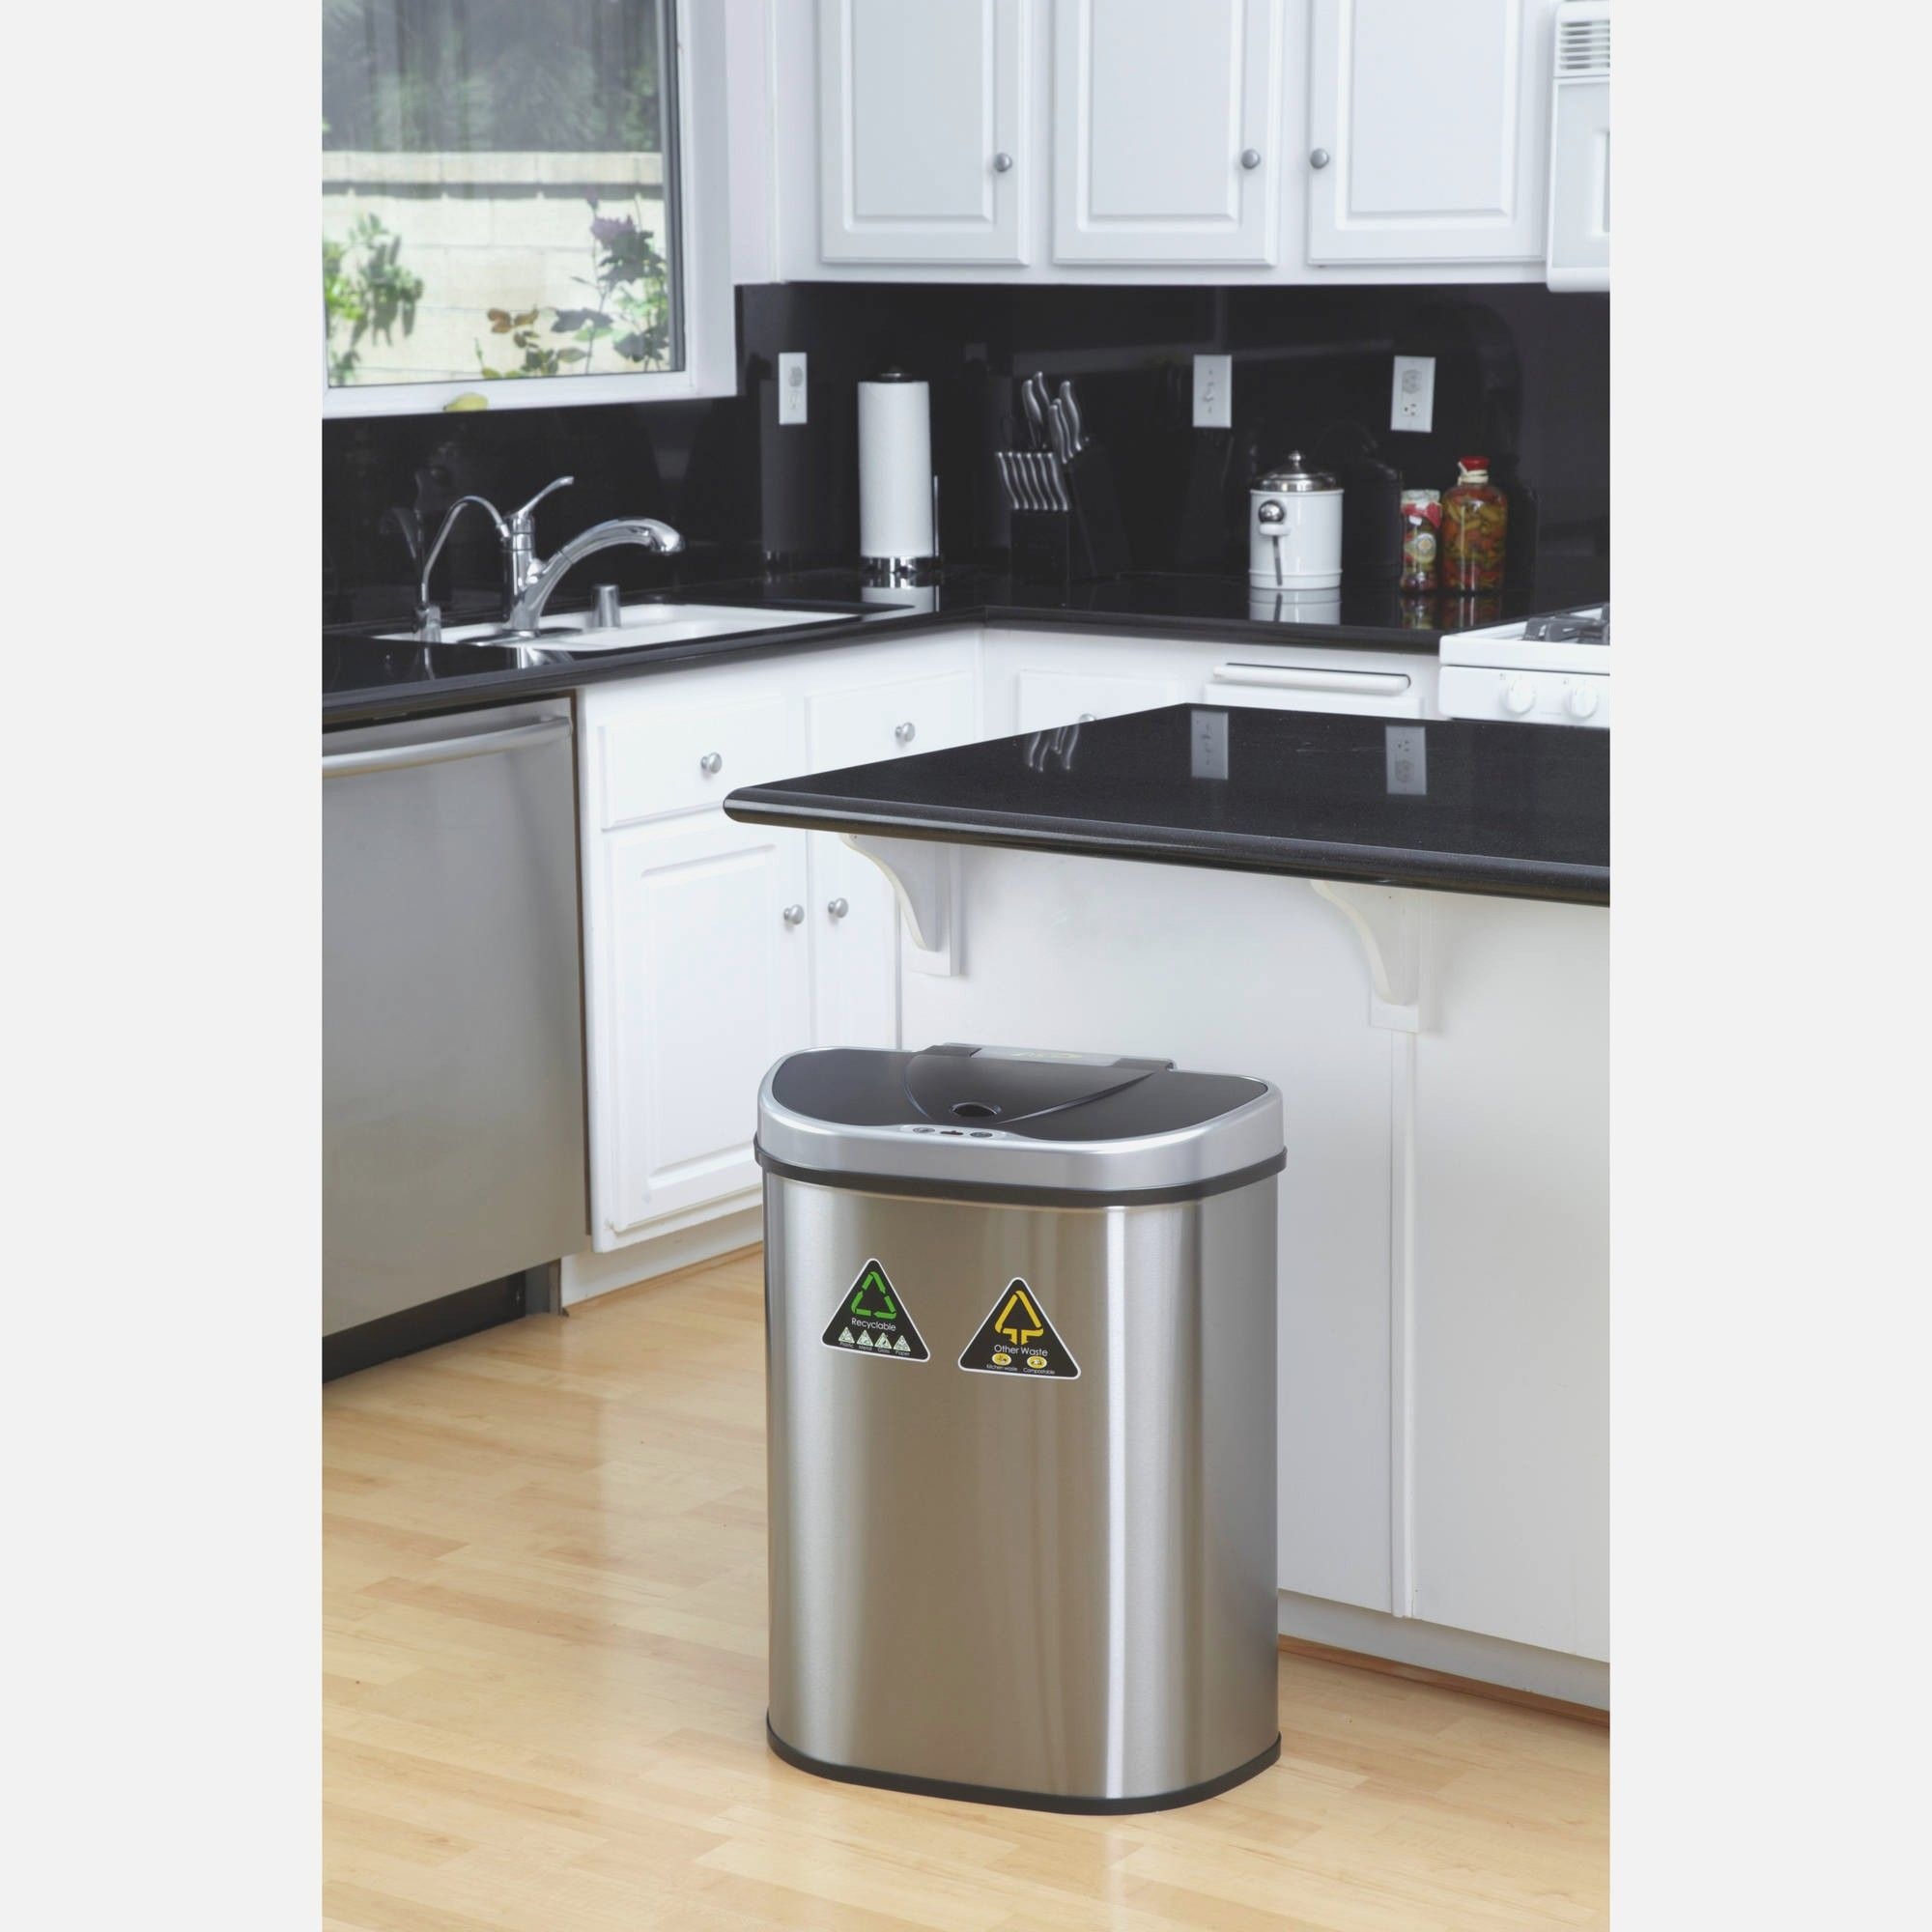 Small Kitchen Trash Cans Kitchen Island With Trash Bin Black Kitchen Island With Trash